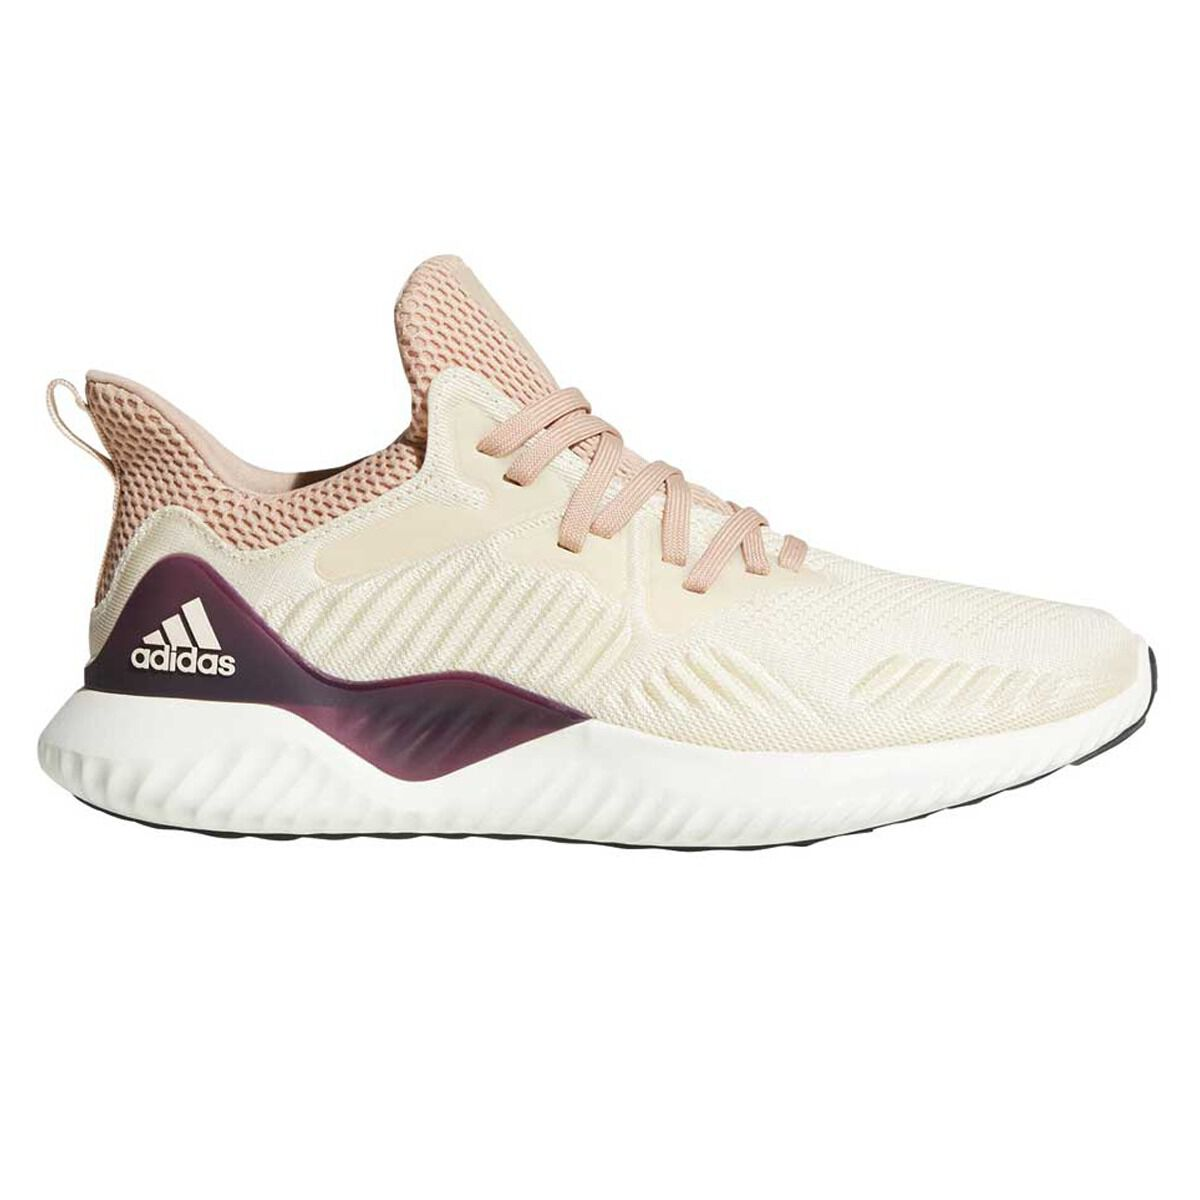 adidas Alphabounce Beyond Women's Running Shoes | Products